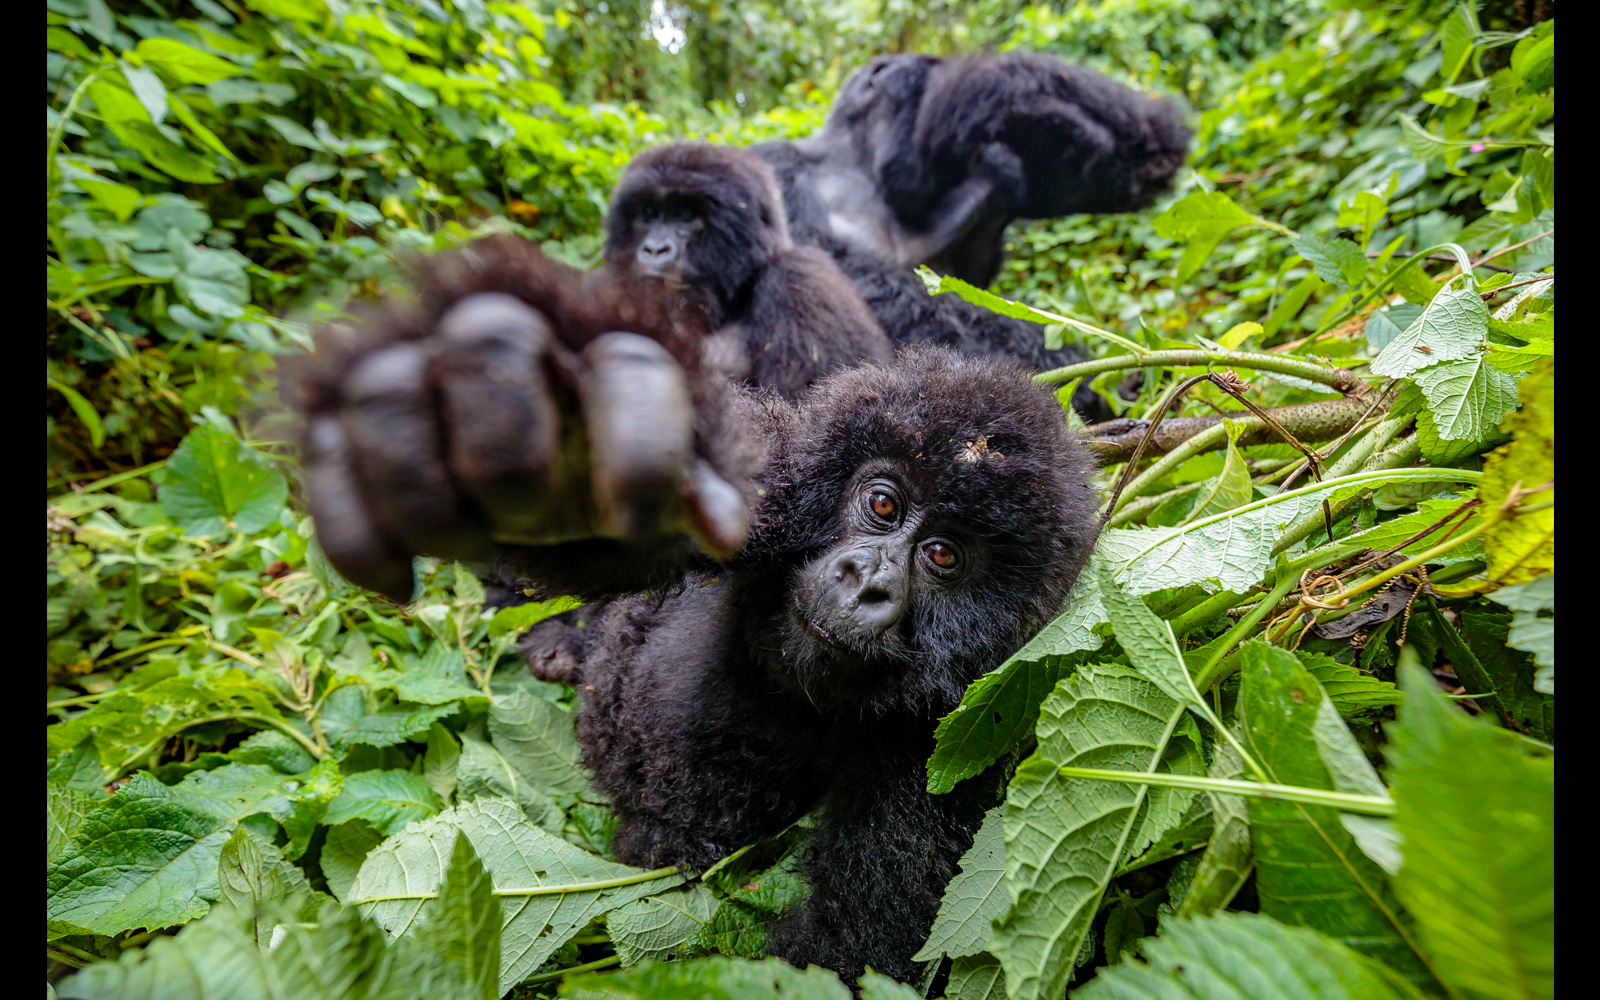 A mountain gorilla juvenile reaches out in Virunga National Park, DR Congo © Bobby-Jo Vial